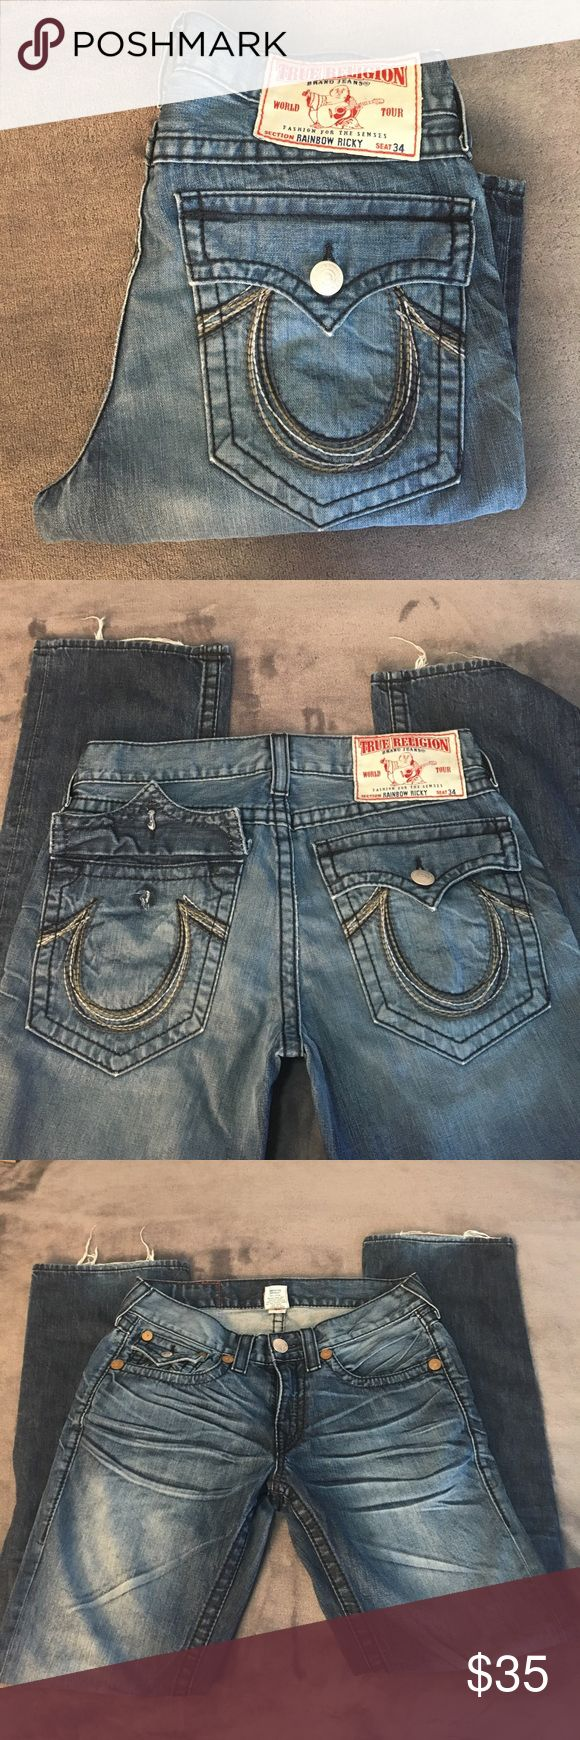 Men's True Religion jeans. Size 32 Great jeans but they do show some signs of wear: One button on back pocket is missing and some wear on the hems. Inseam is 34 inches. True Religion Jeans Relaxed